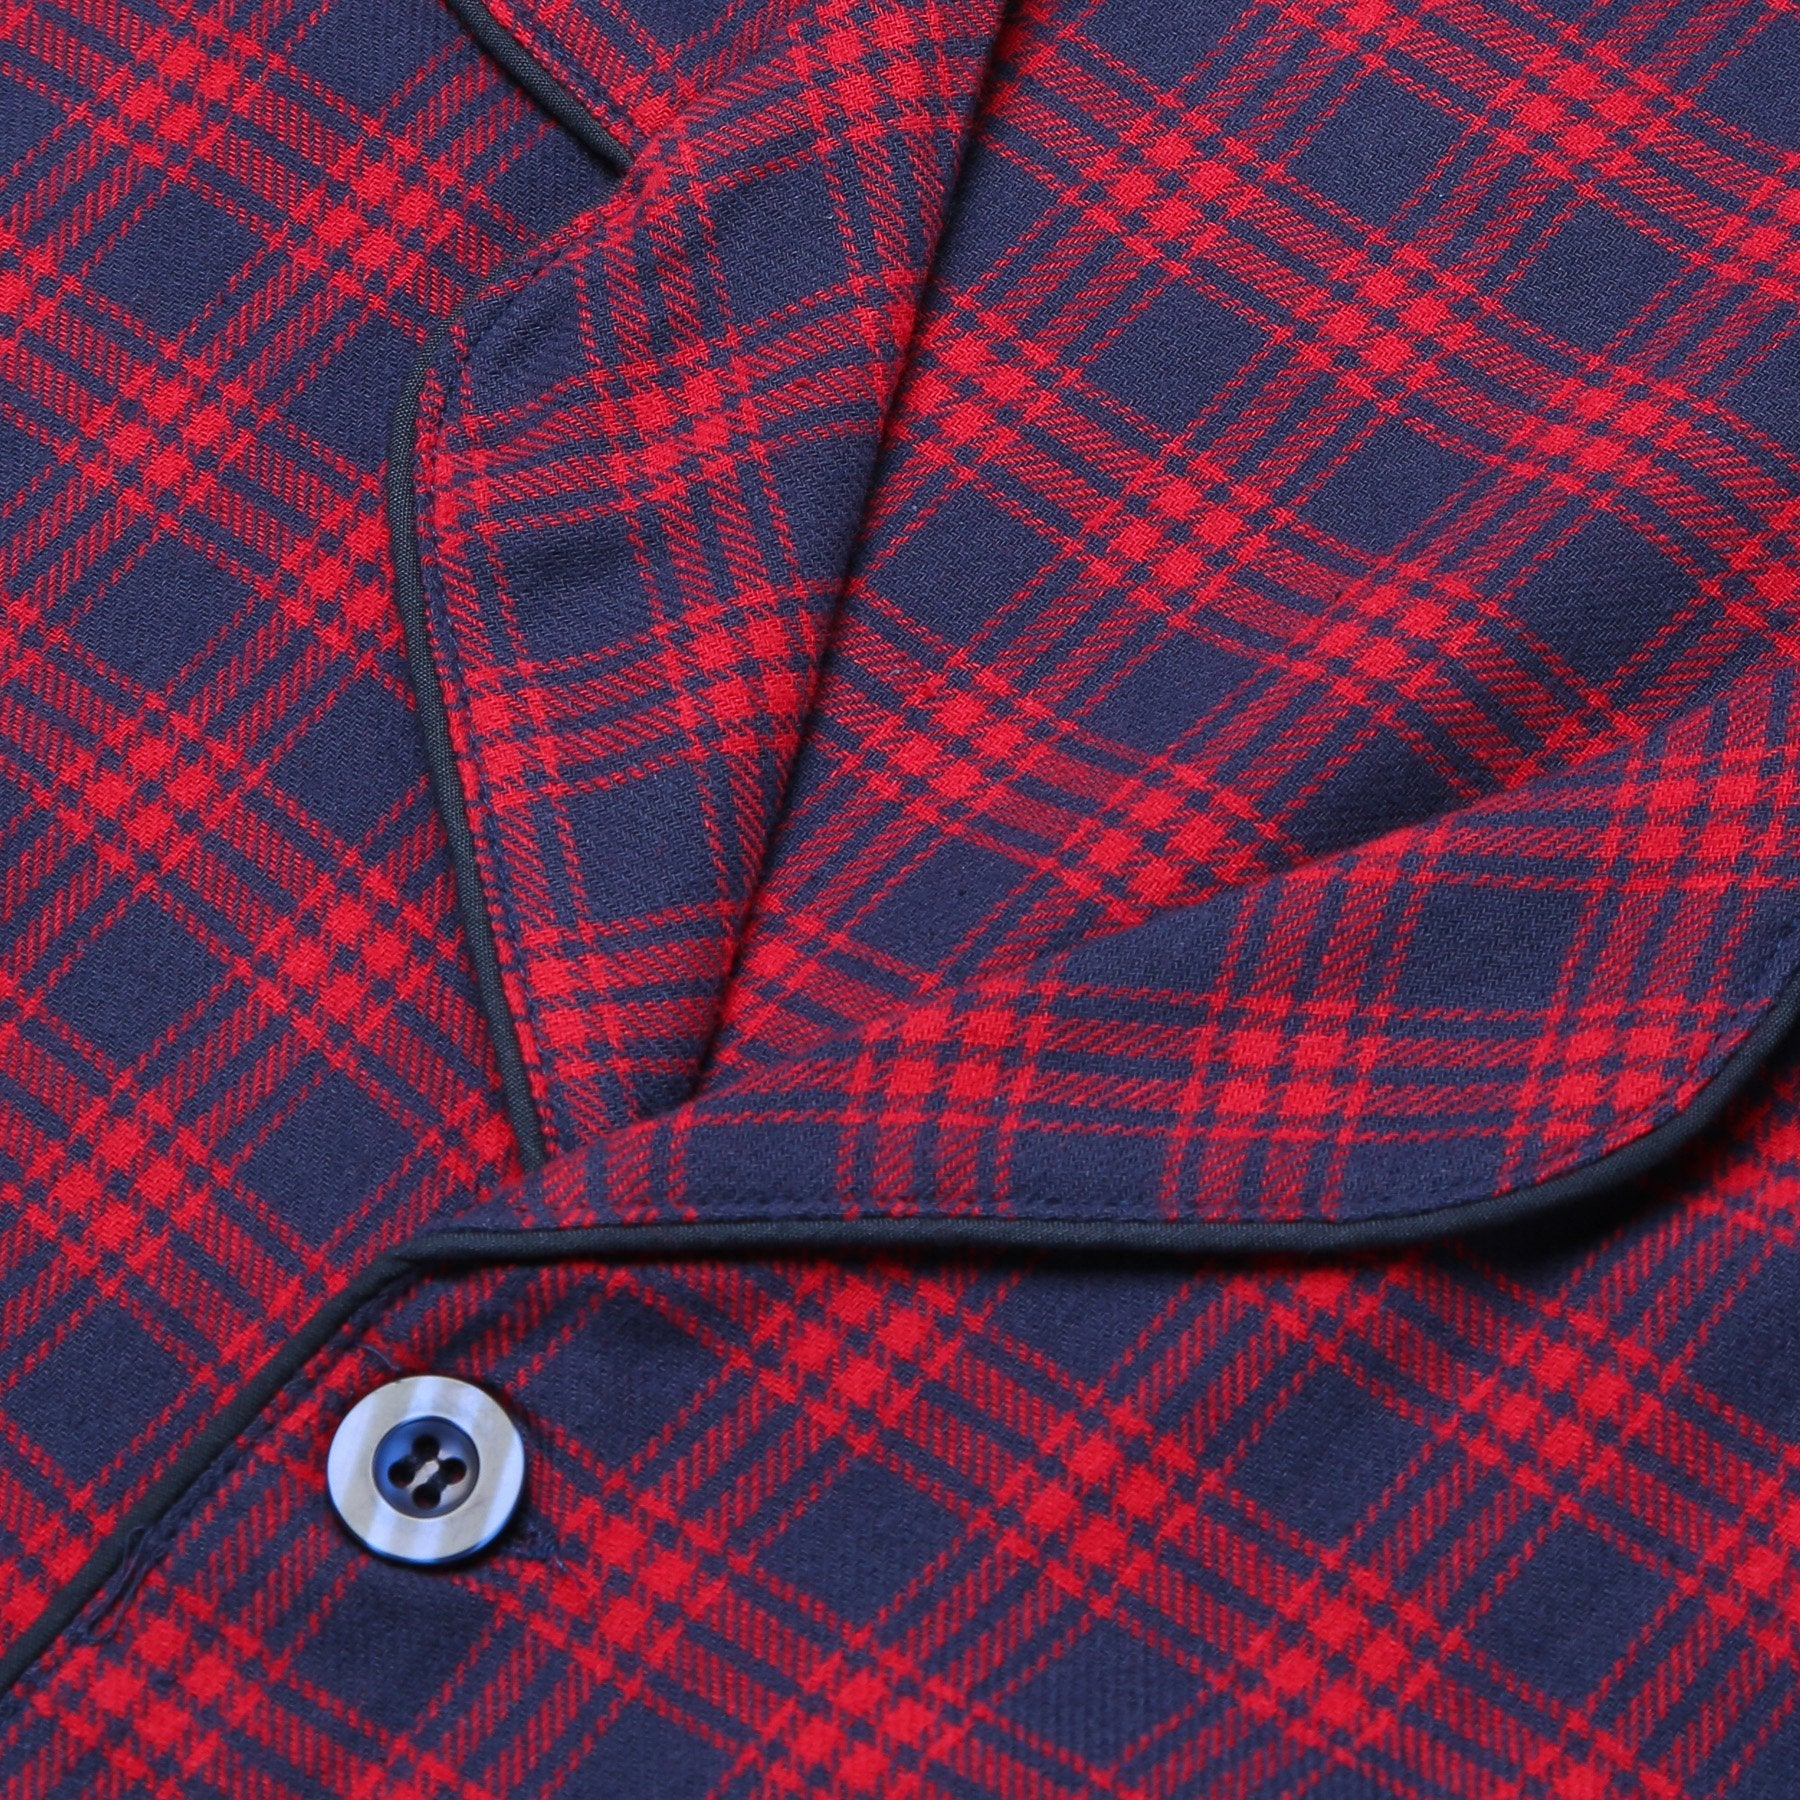 Rael Brook Standard Fit Red Check Brushed Cotton Pyjama Set Collar and Fastening